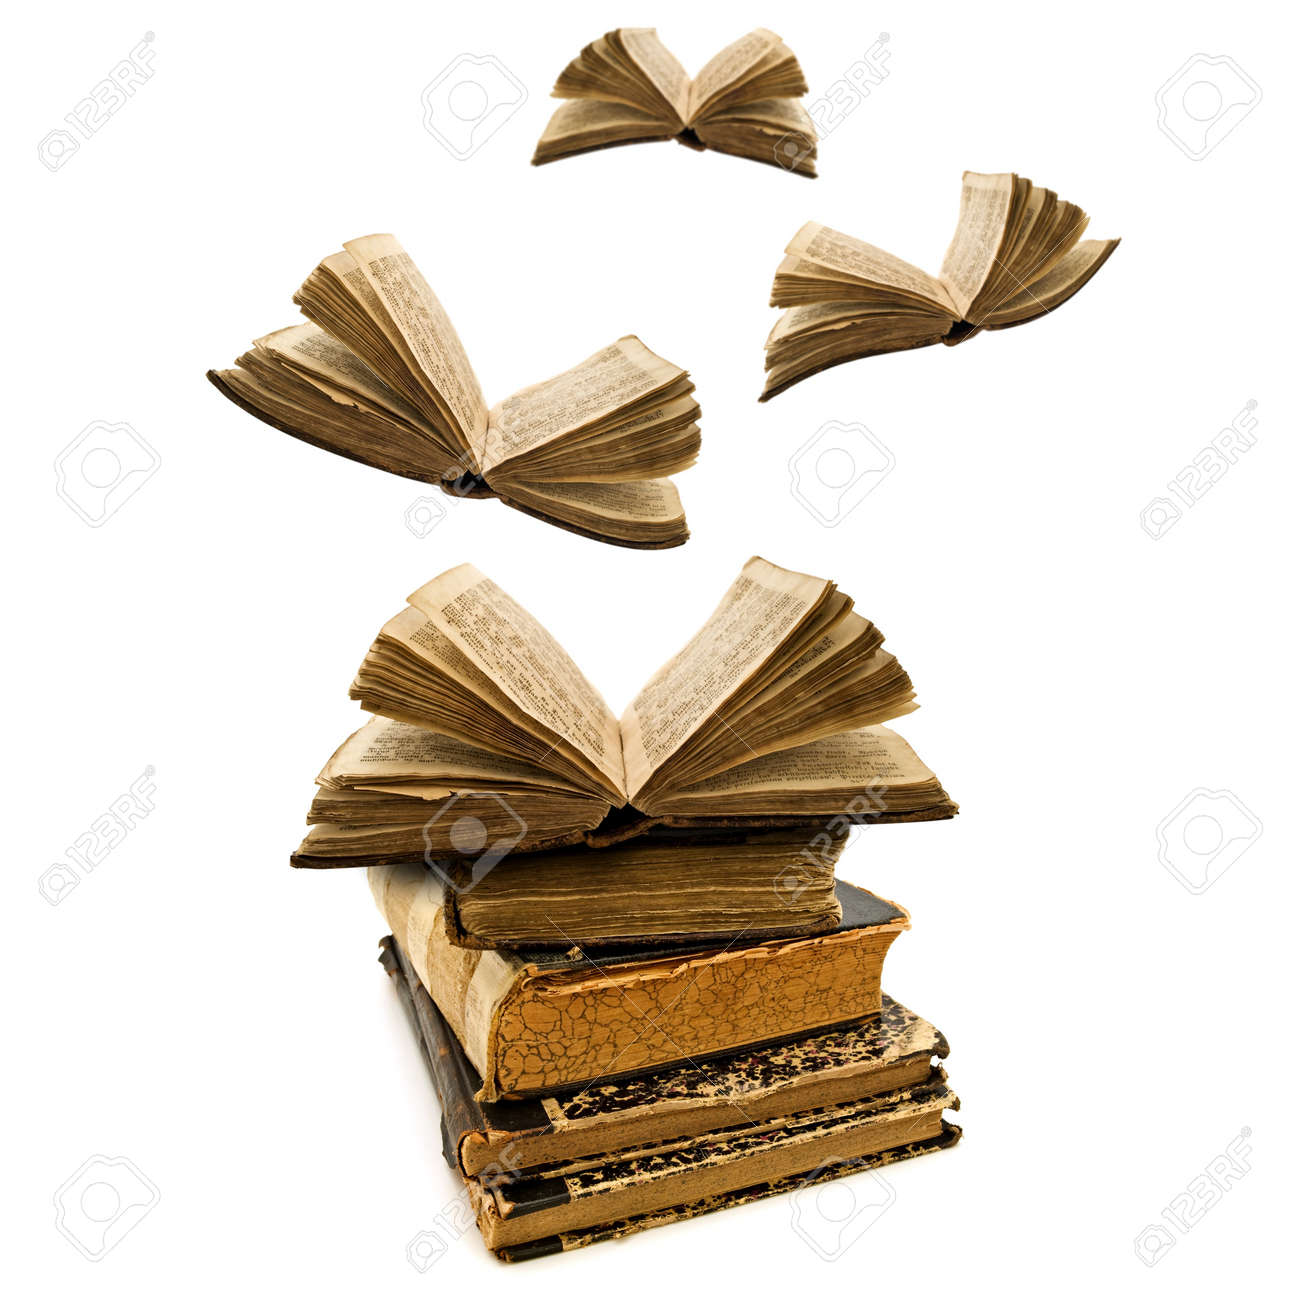 education concept: opened old books flying away Stock Photo - 7446657